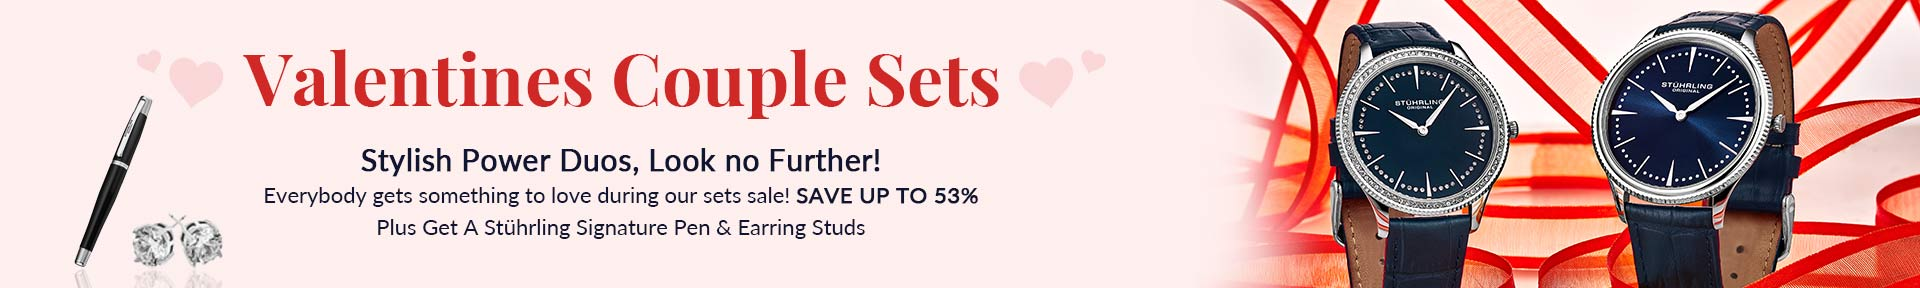 Couple Valentines Day Sets